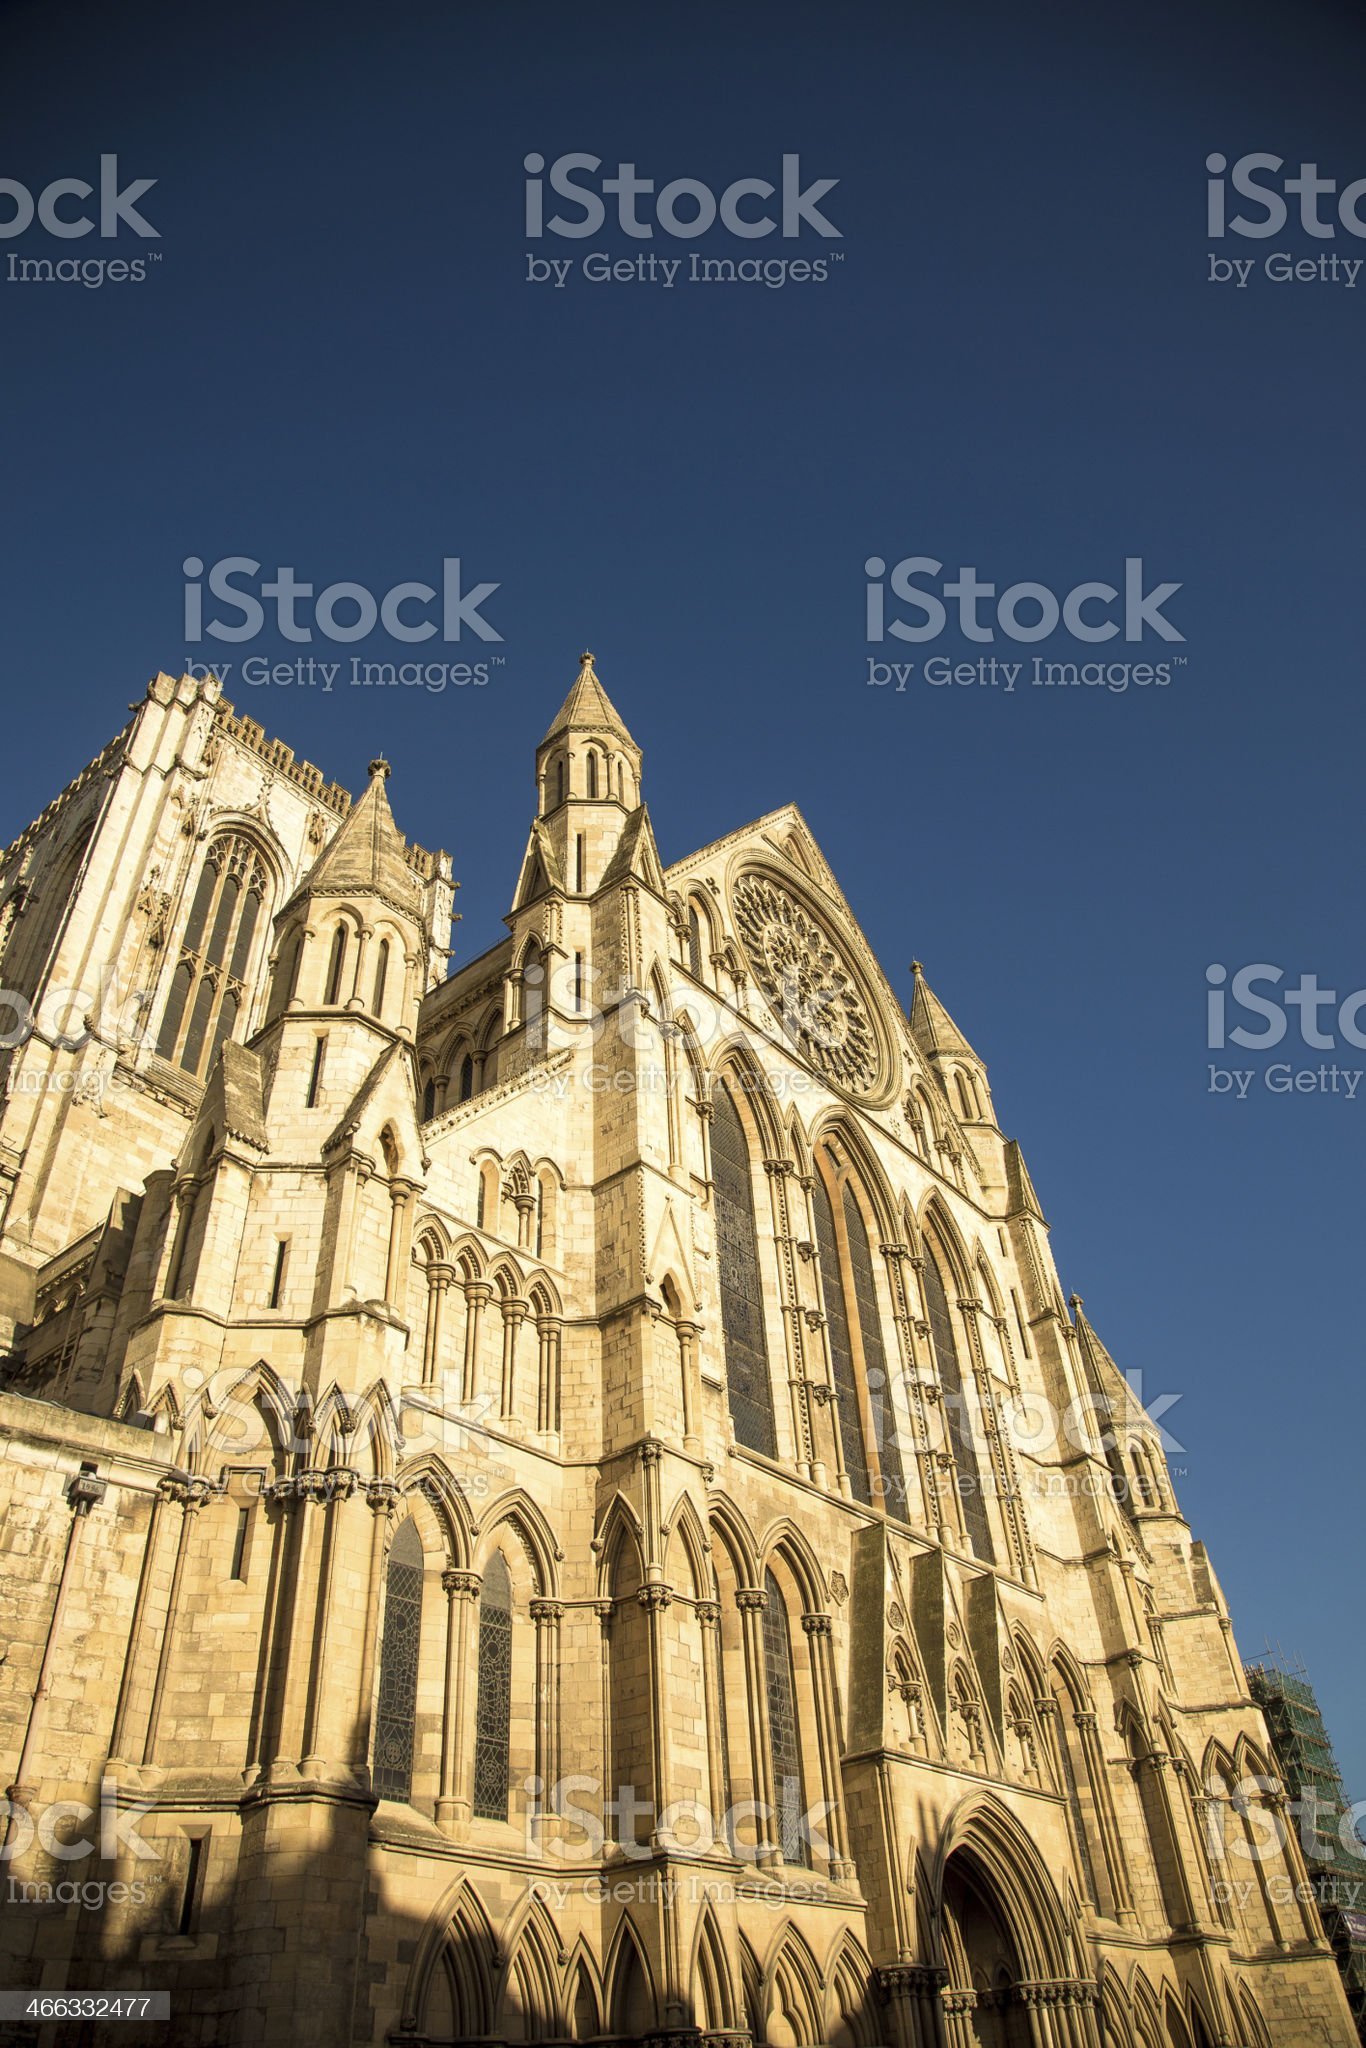 York Minster royalty-free stock photo